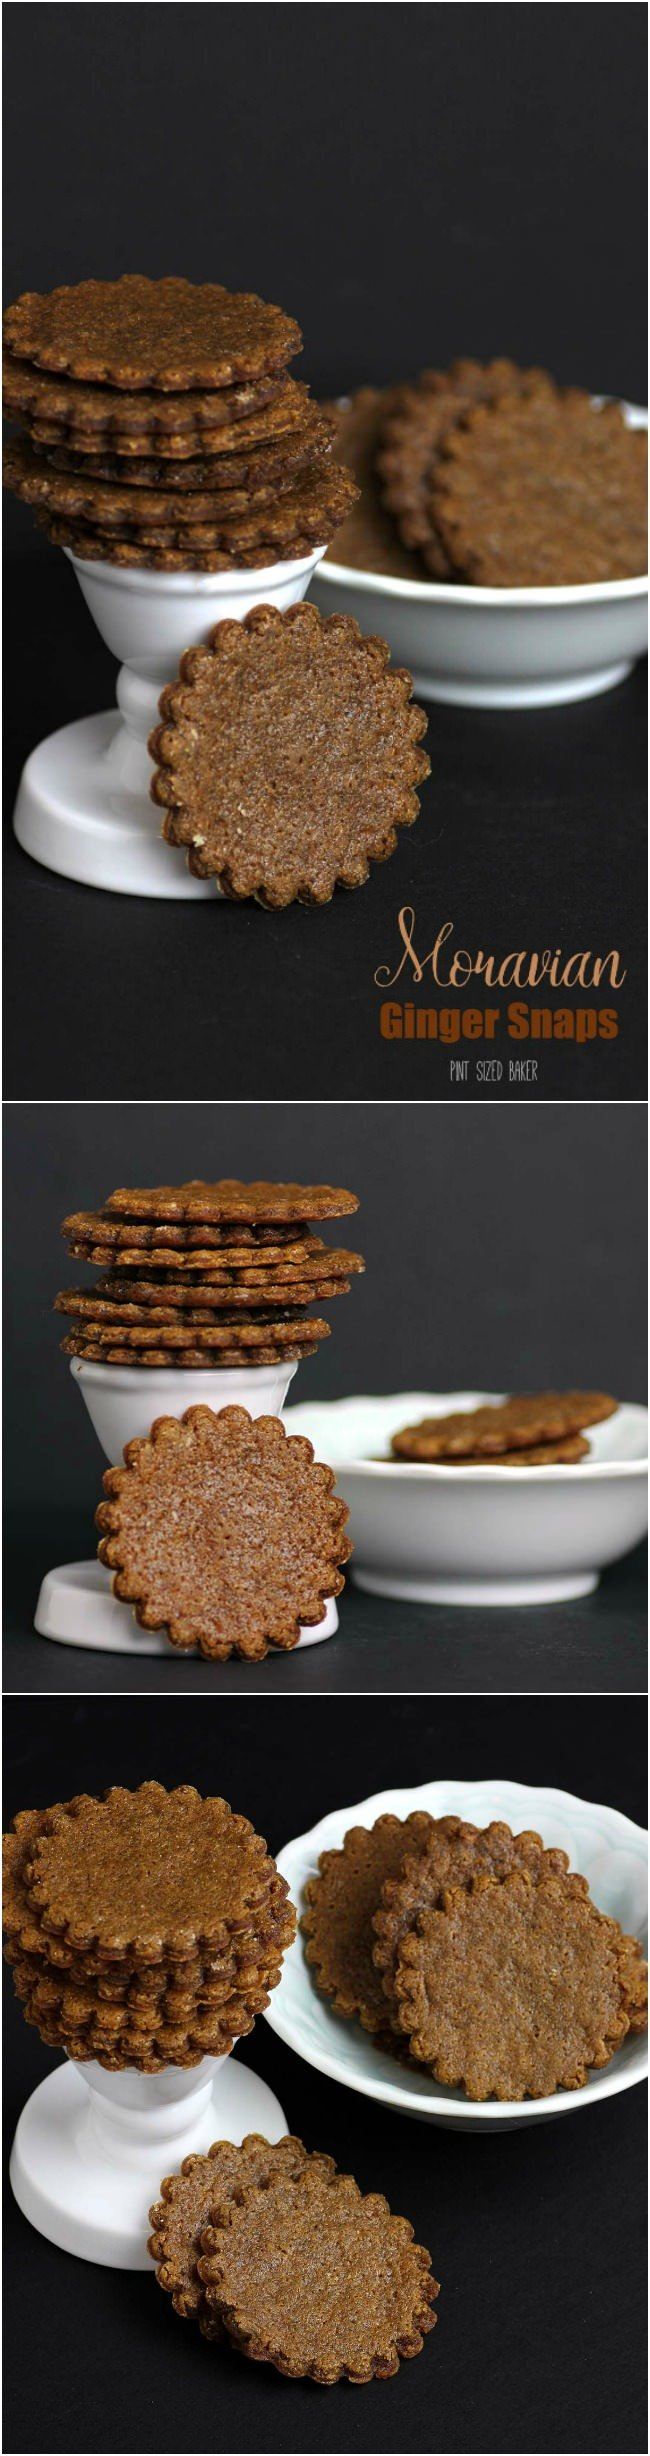 Enjoy a few Moravian Ginger Snaps with your tea or coffee. Spicy with a great crunch!